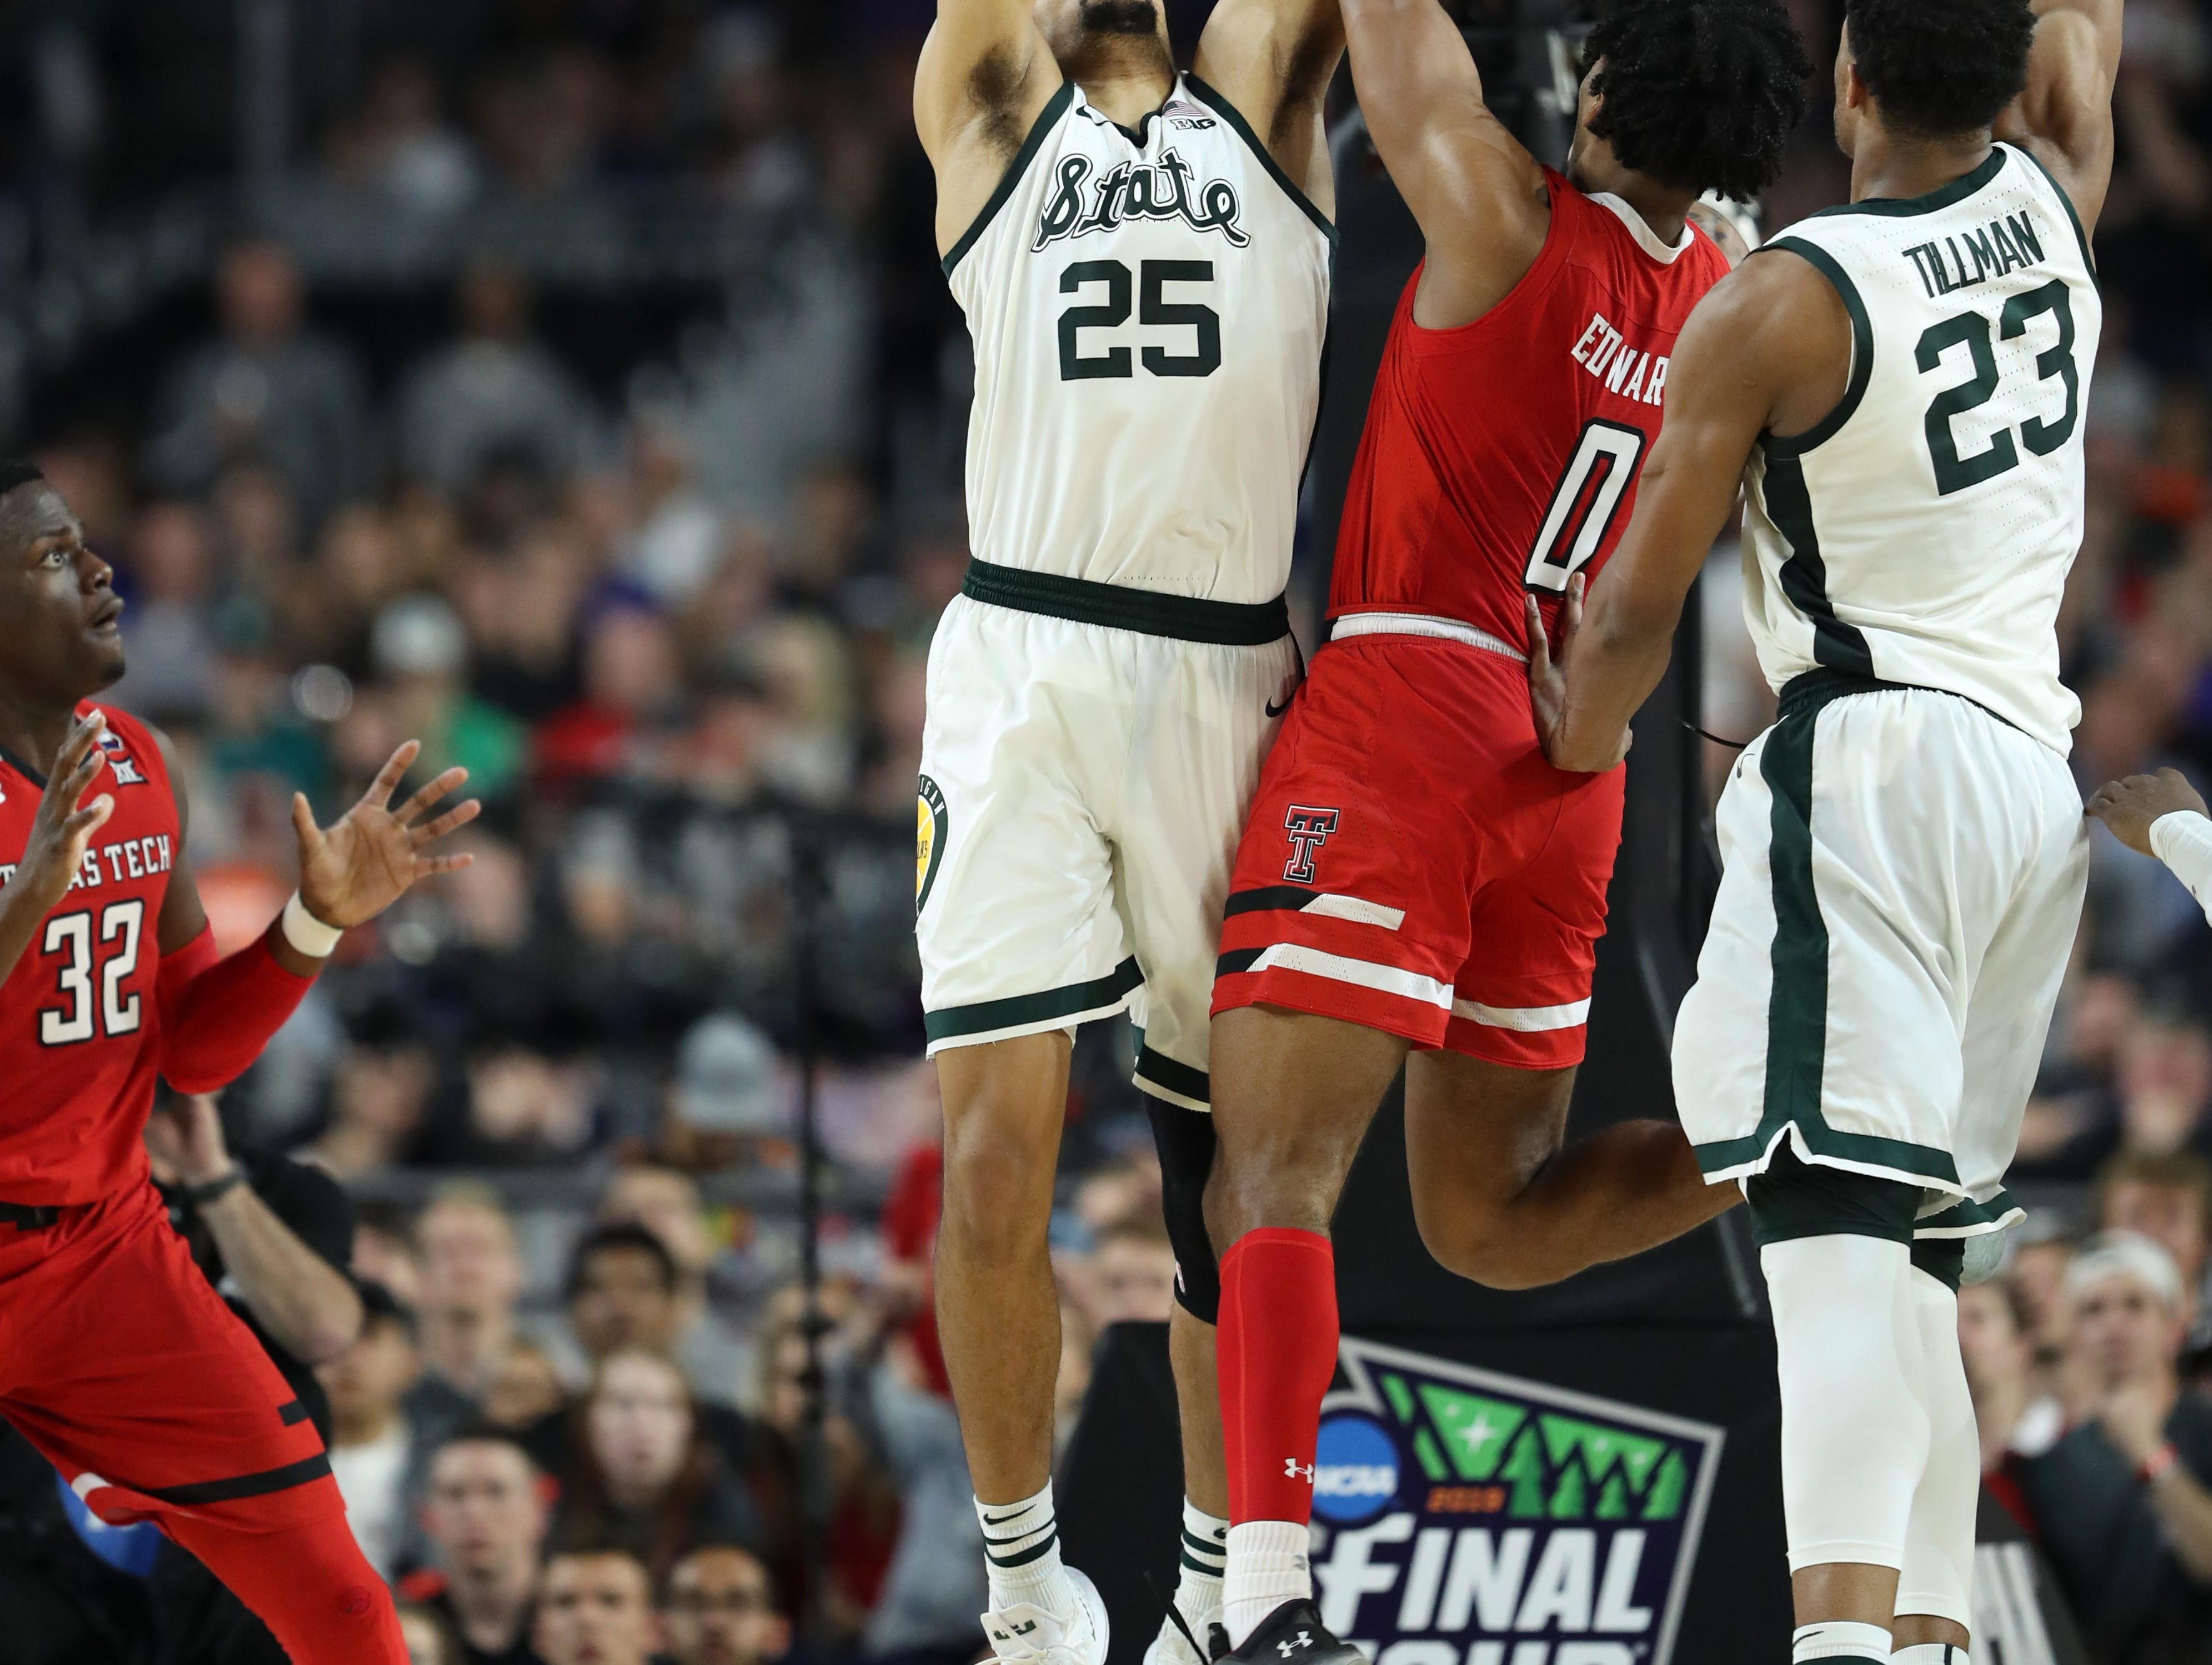 Michigan State forward Kenny Goins (25) guards Texas Tech guard Kyler Edwards (0) in the second half of the Final Four game at U.S. Bank Stadium in Minneapolis, Minnesota on Saturday, April 06, 2019.